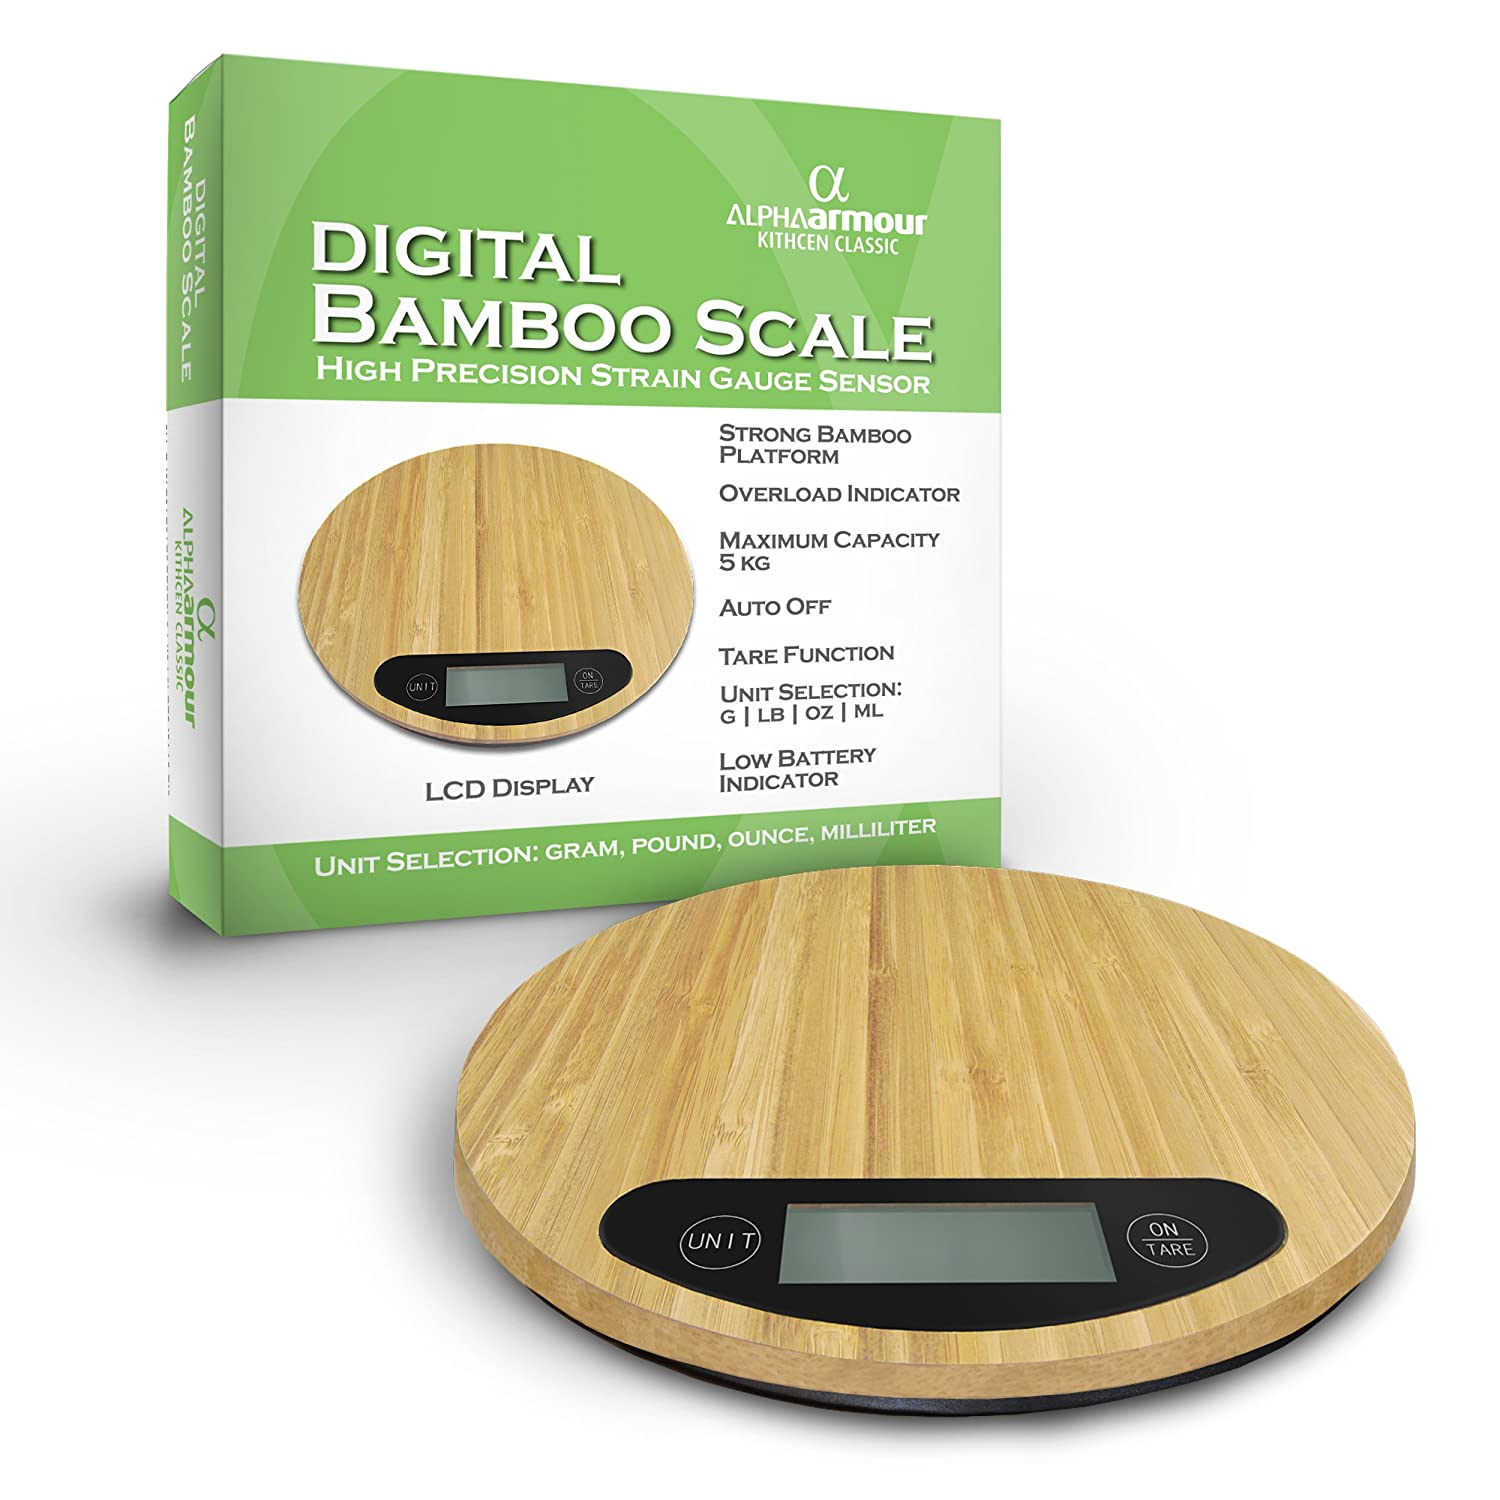 Alpha Armour Classy Bamboo Digital Kitchen Scales